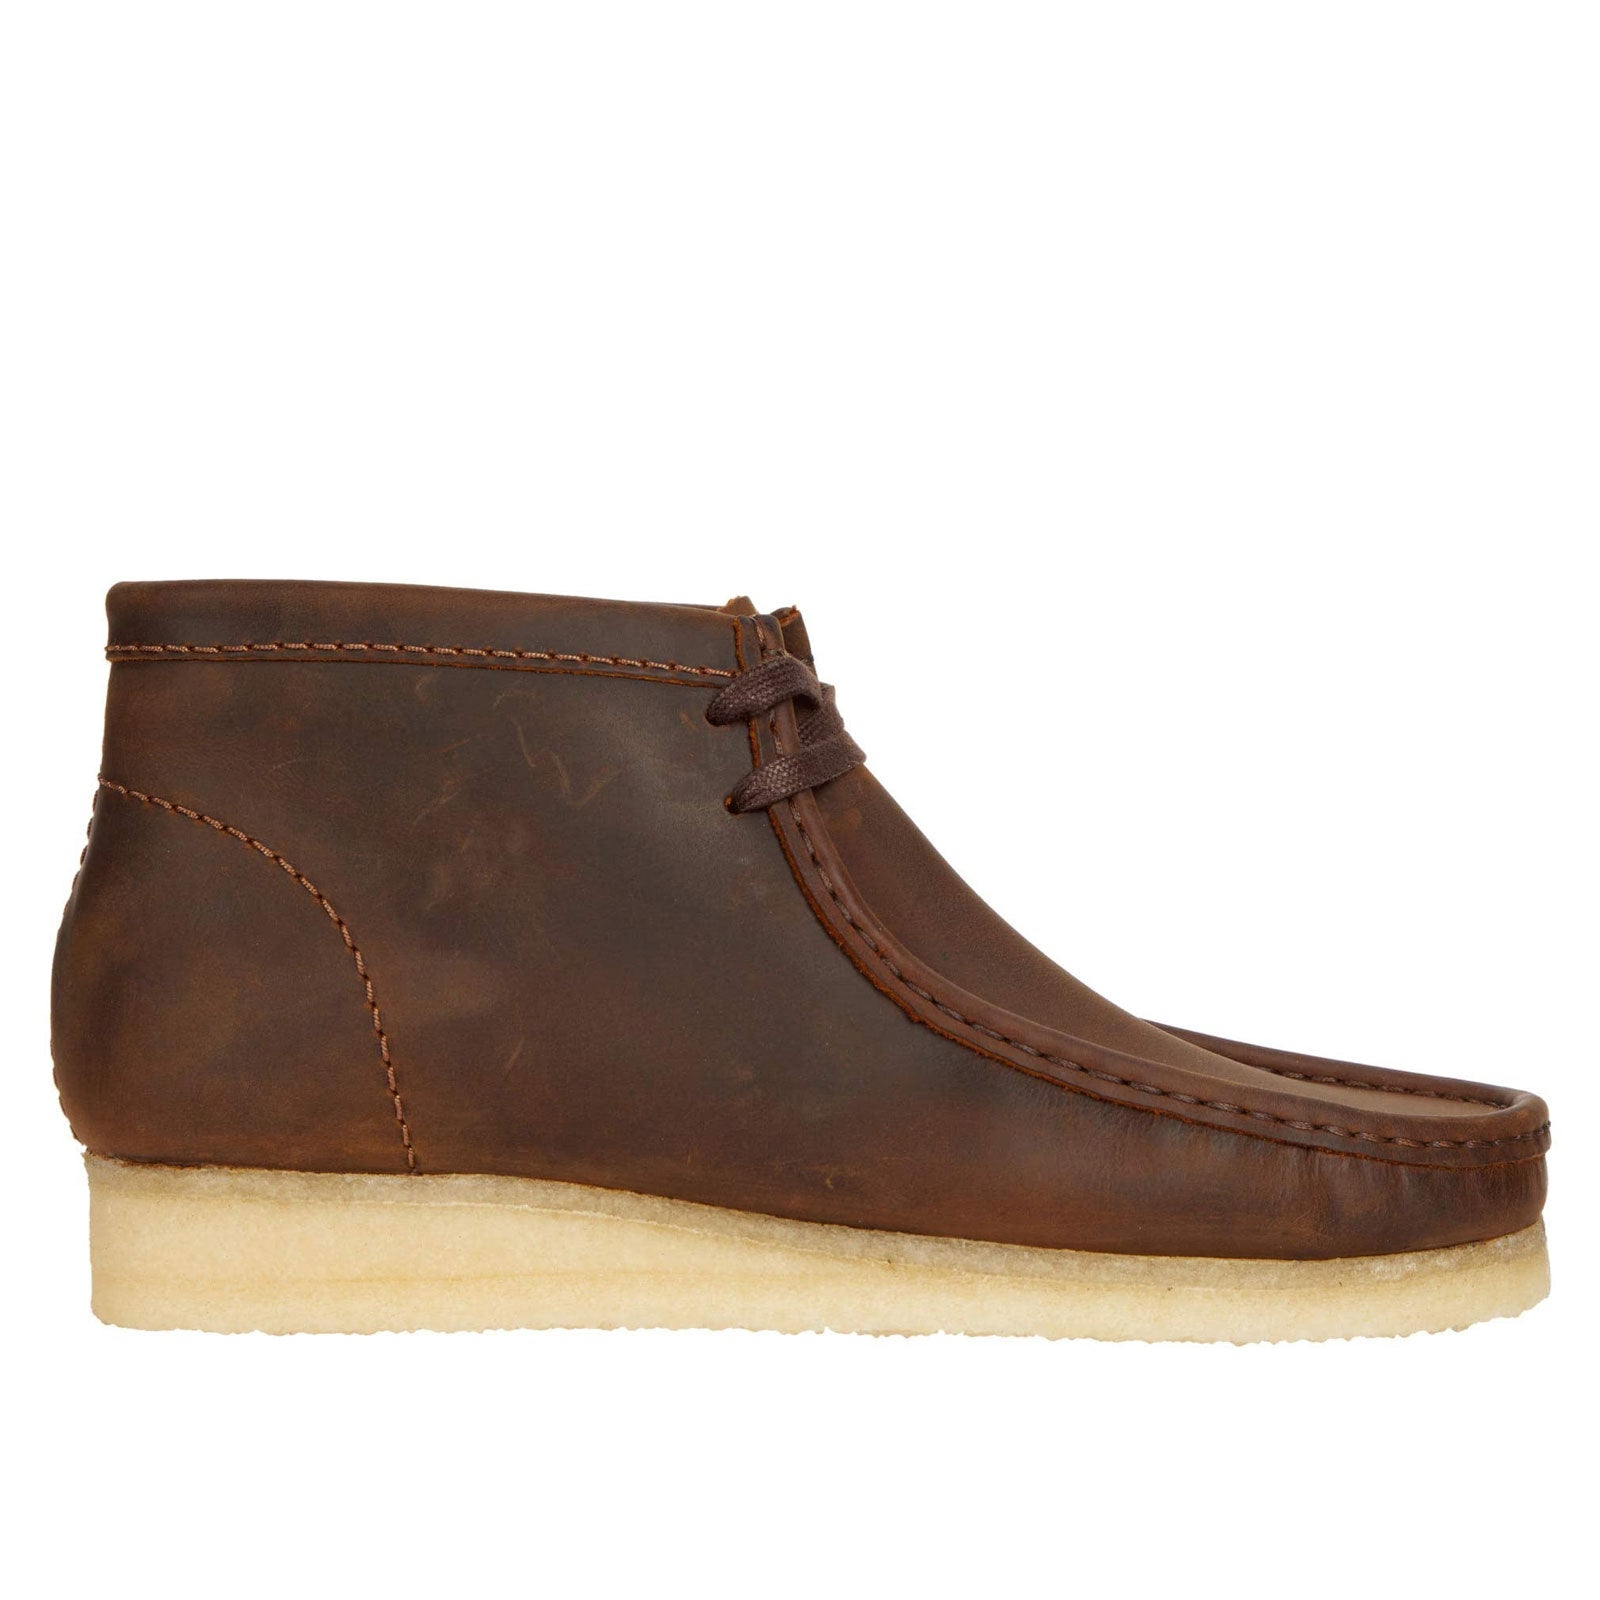 Clarks Wallabee Boot 55513 (Beeswax)